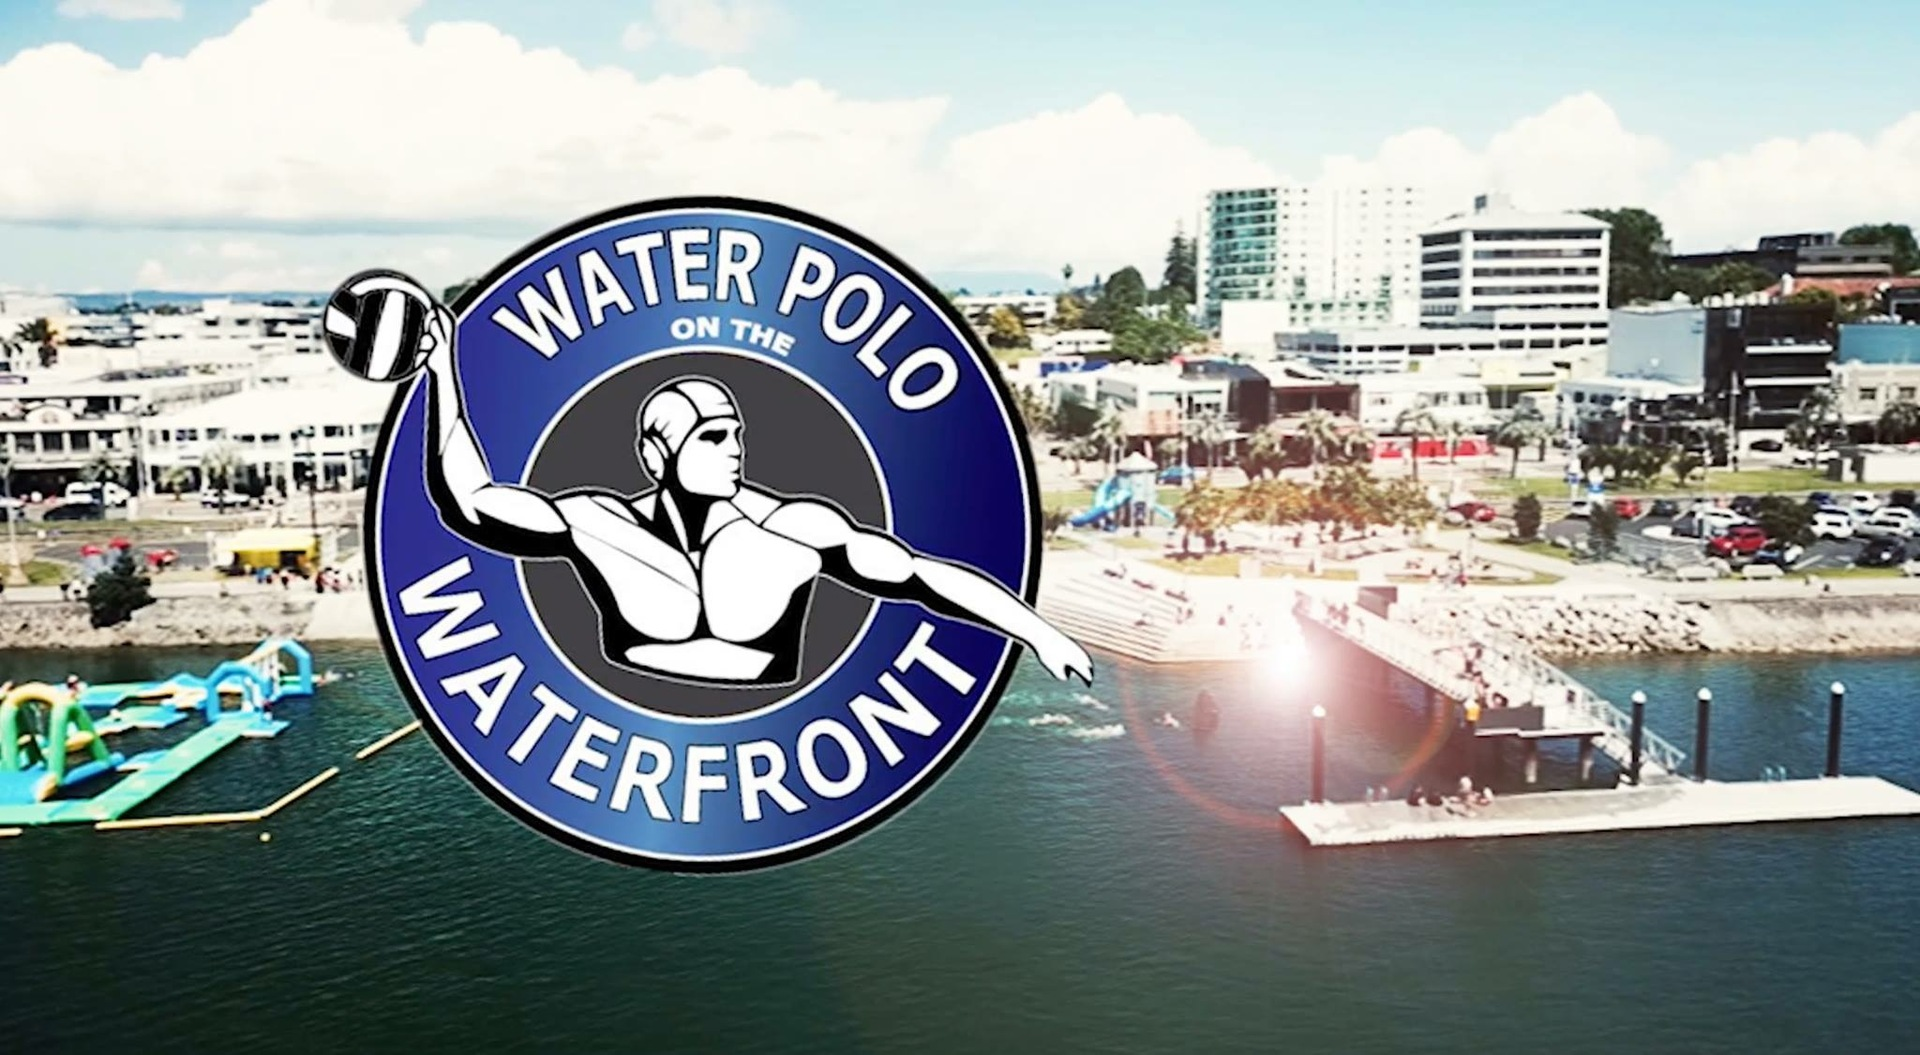 waterpolo on the waterfront